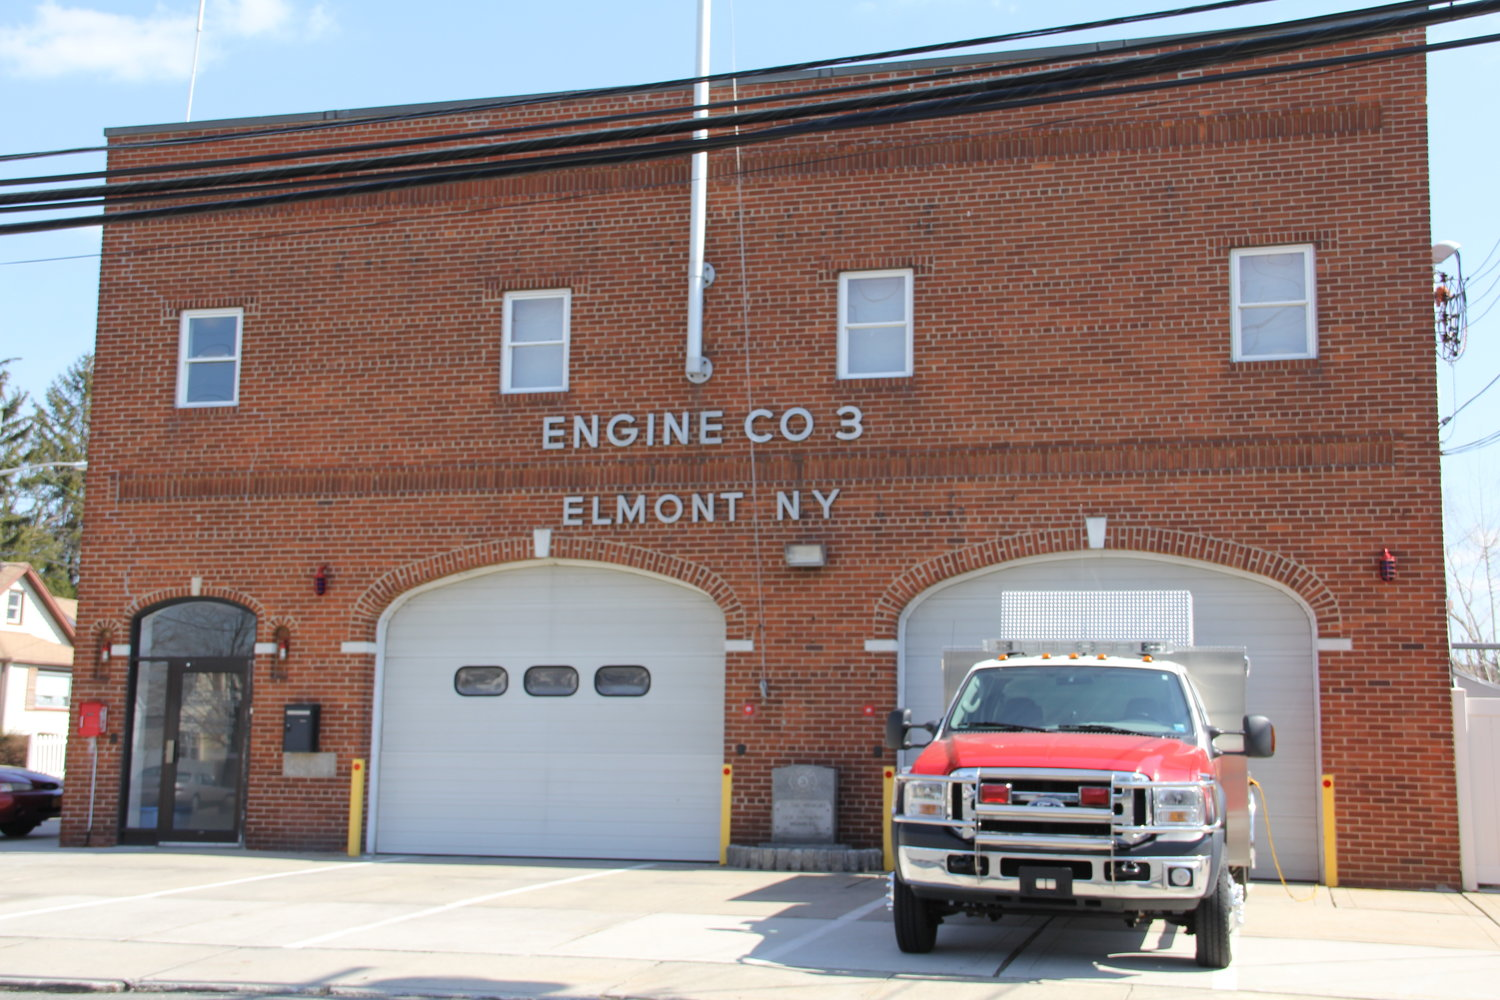 Members of the Elmont Fire Department confirmed deadly levels of carbon monoxide in and Elmont home.